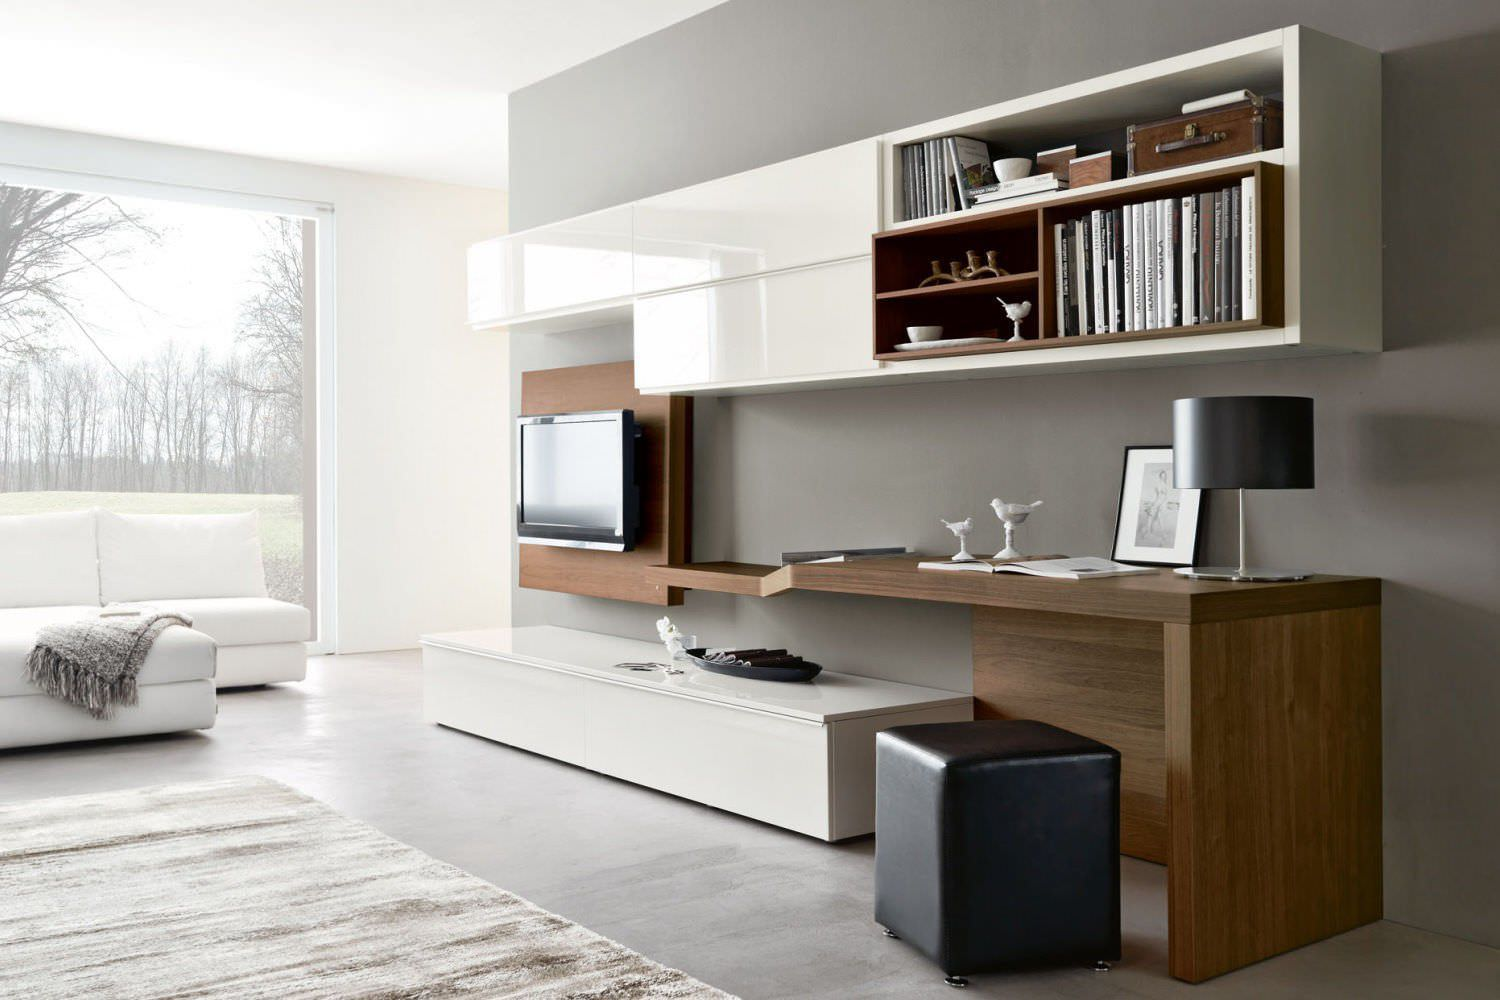 contemporary tv wall unit / wooden / lacquered wood - 528 - napol